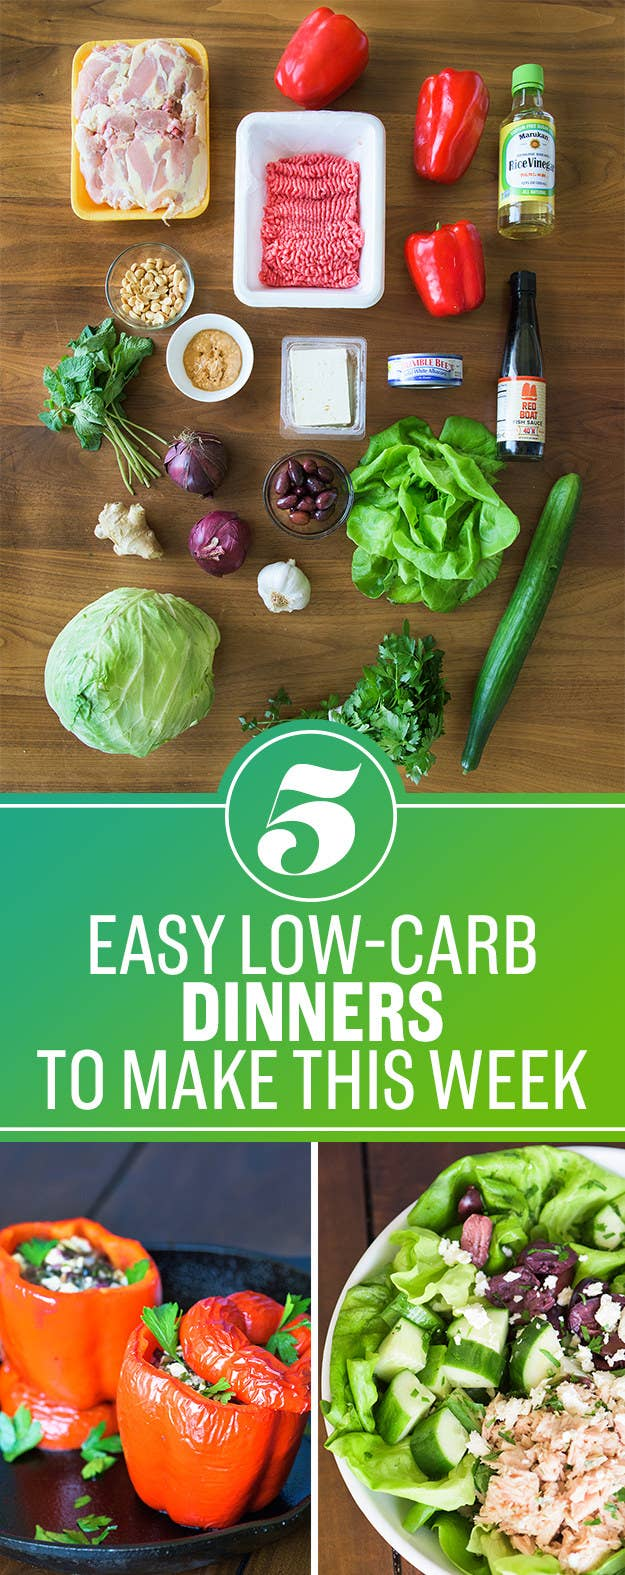 Blue apron buzzfeed